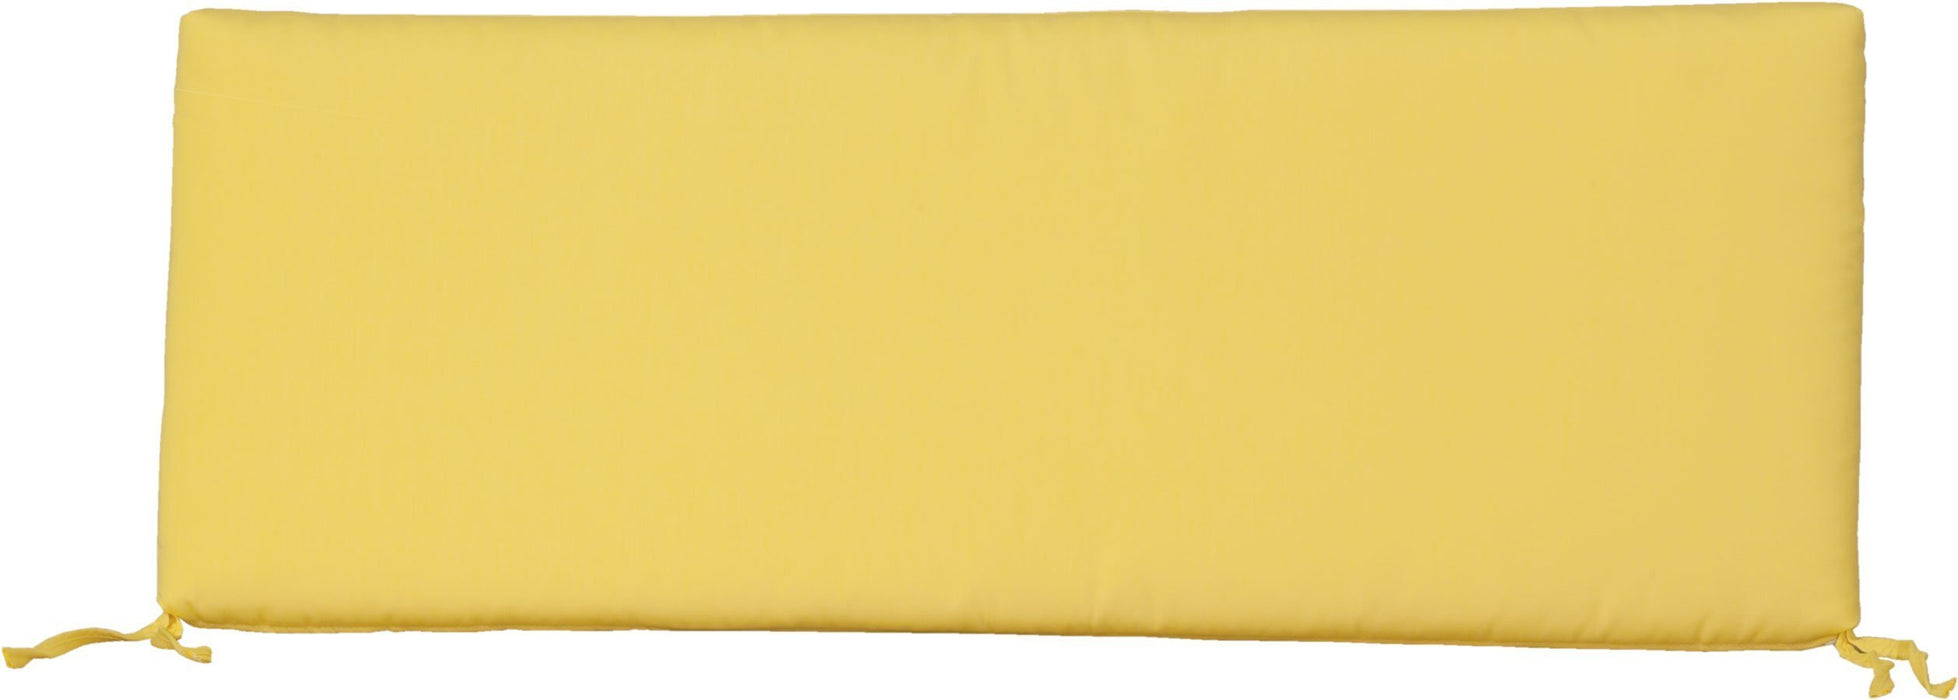 LuxCraft LuxCraft Sunbrella 4 ft. Glider/Swing Cushion Buttercup Cushion 4SCB5438